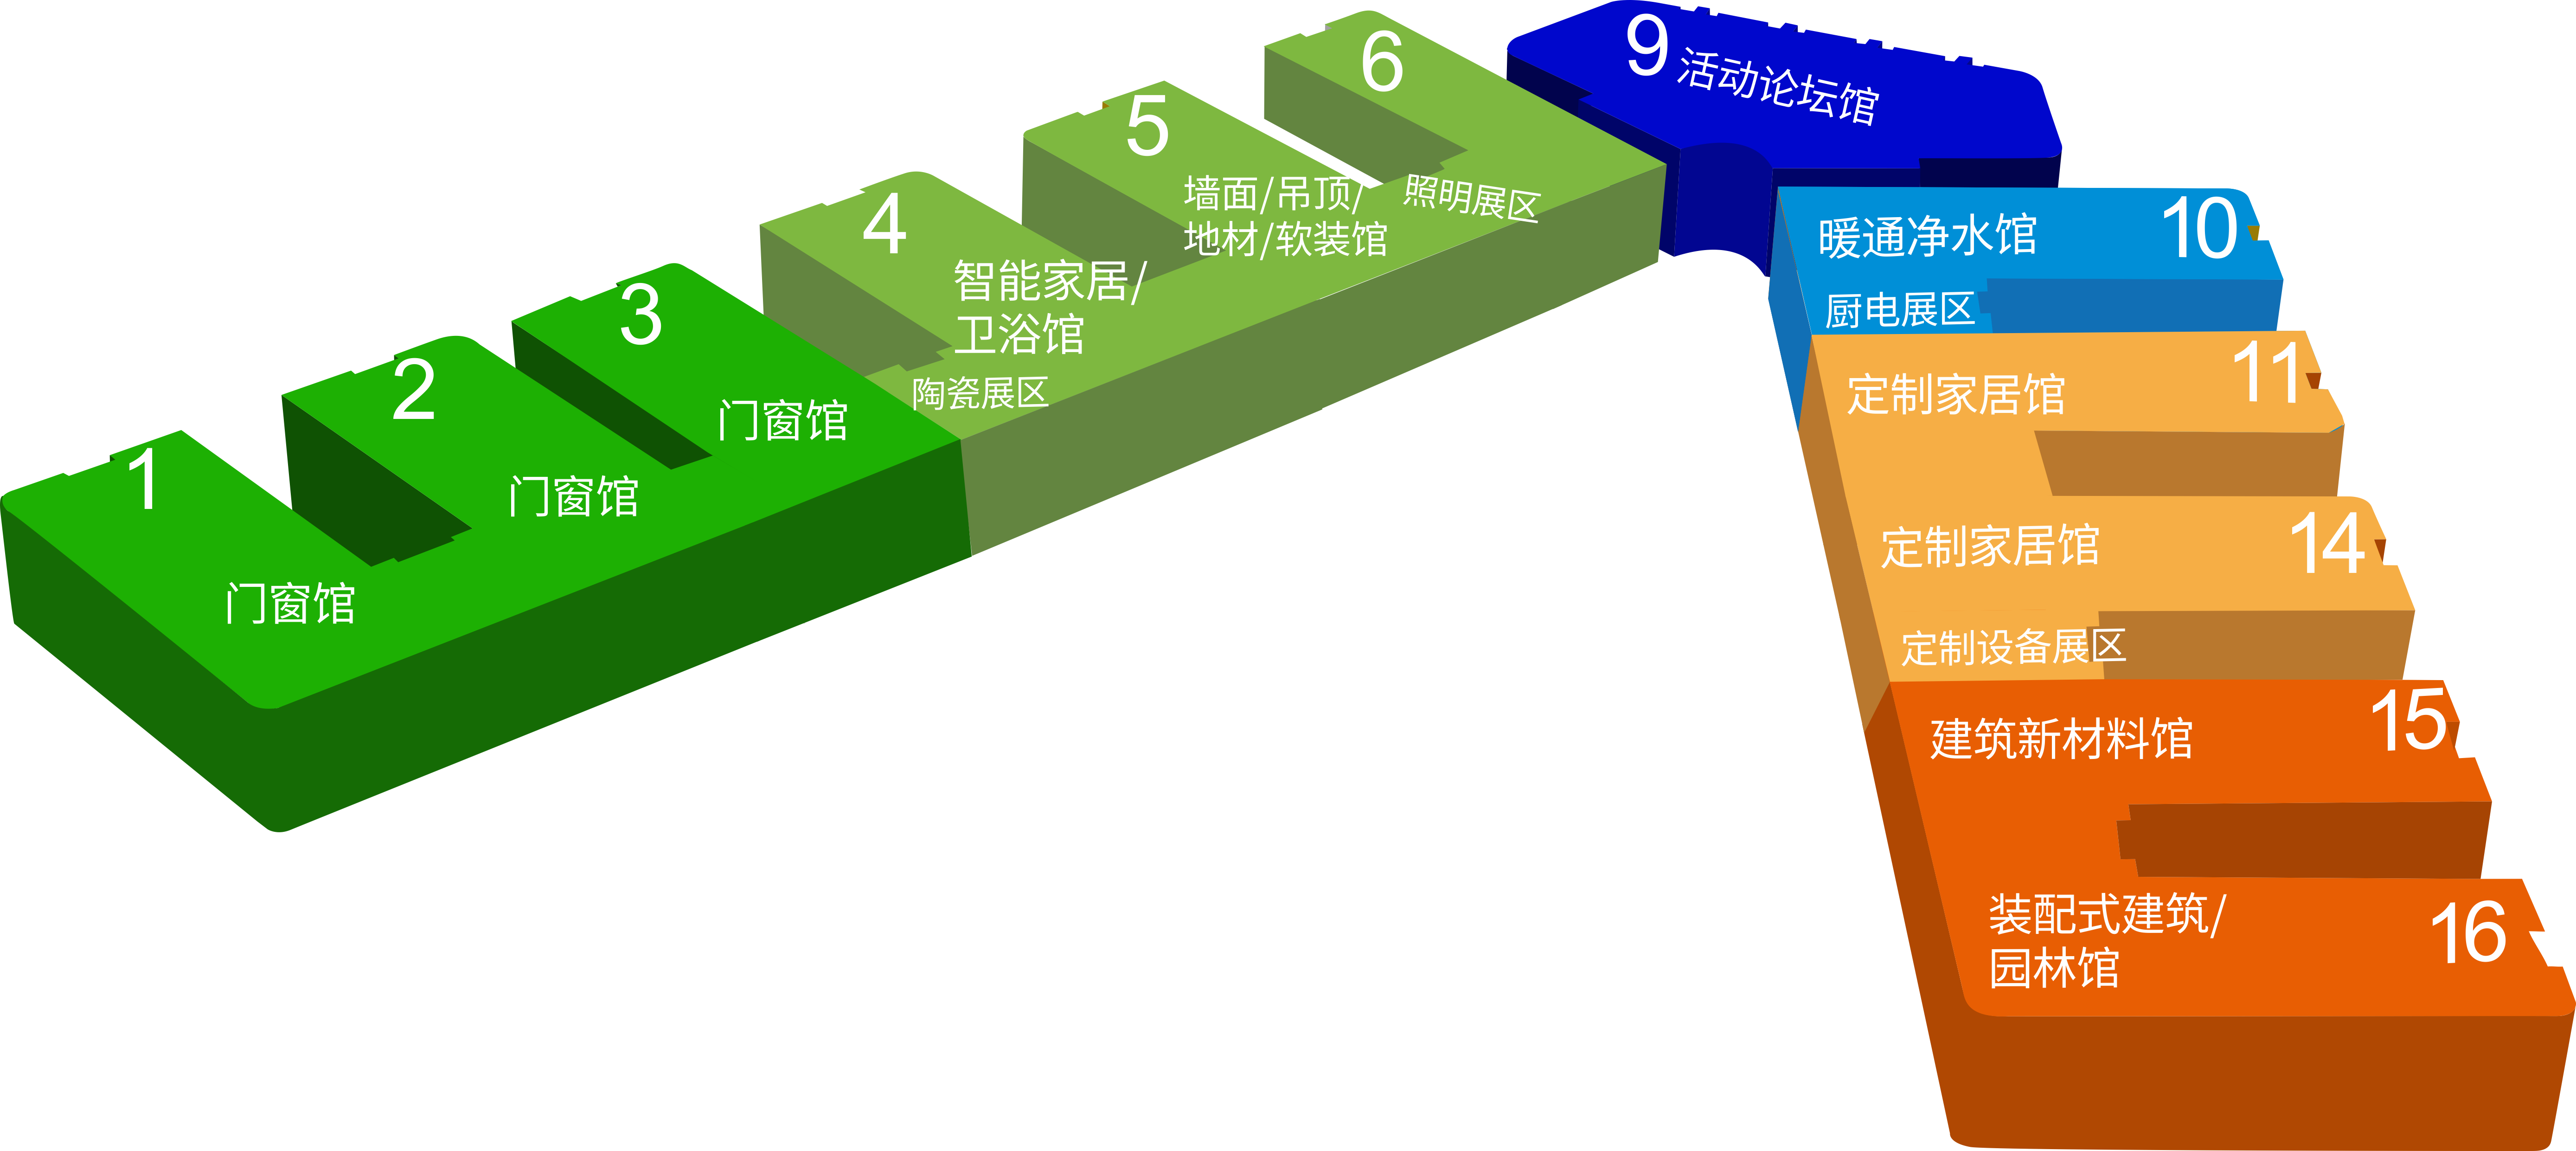 2-20030910012X55.png